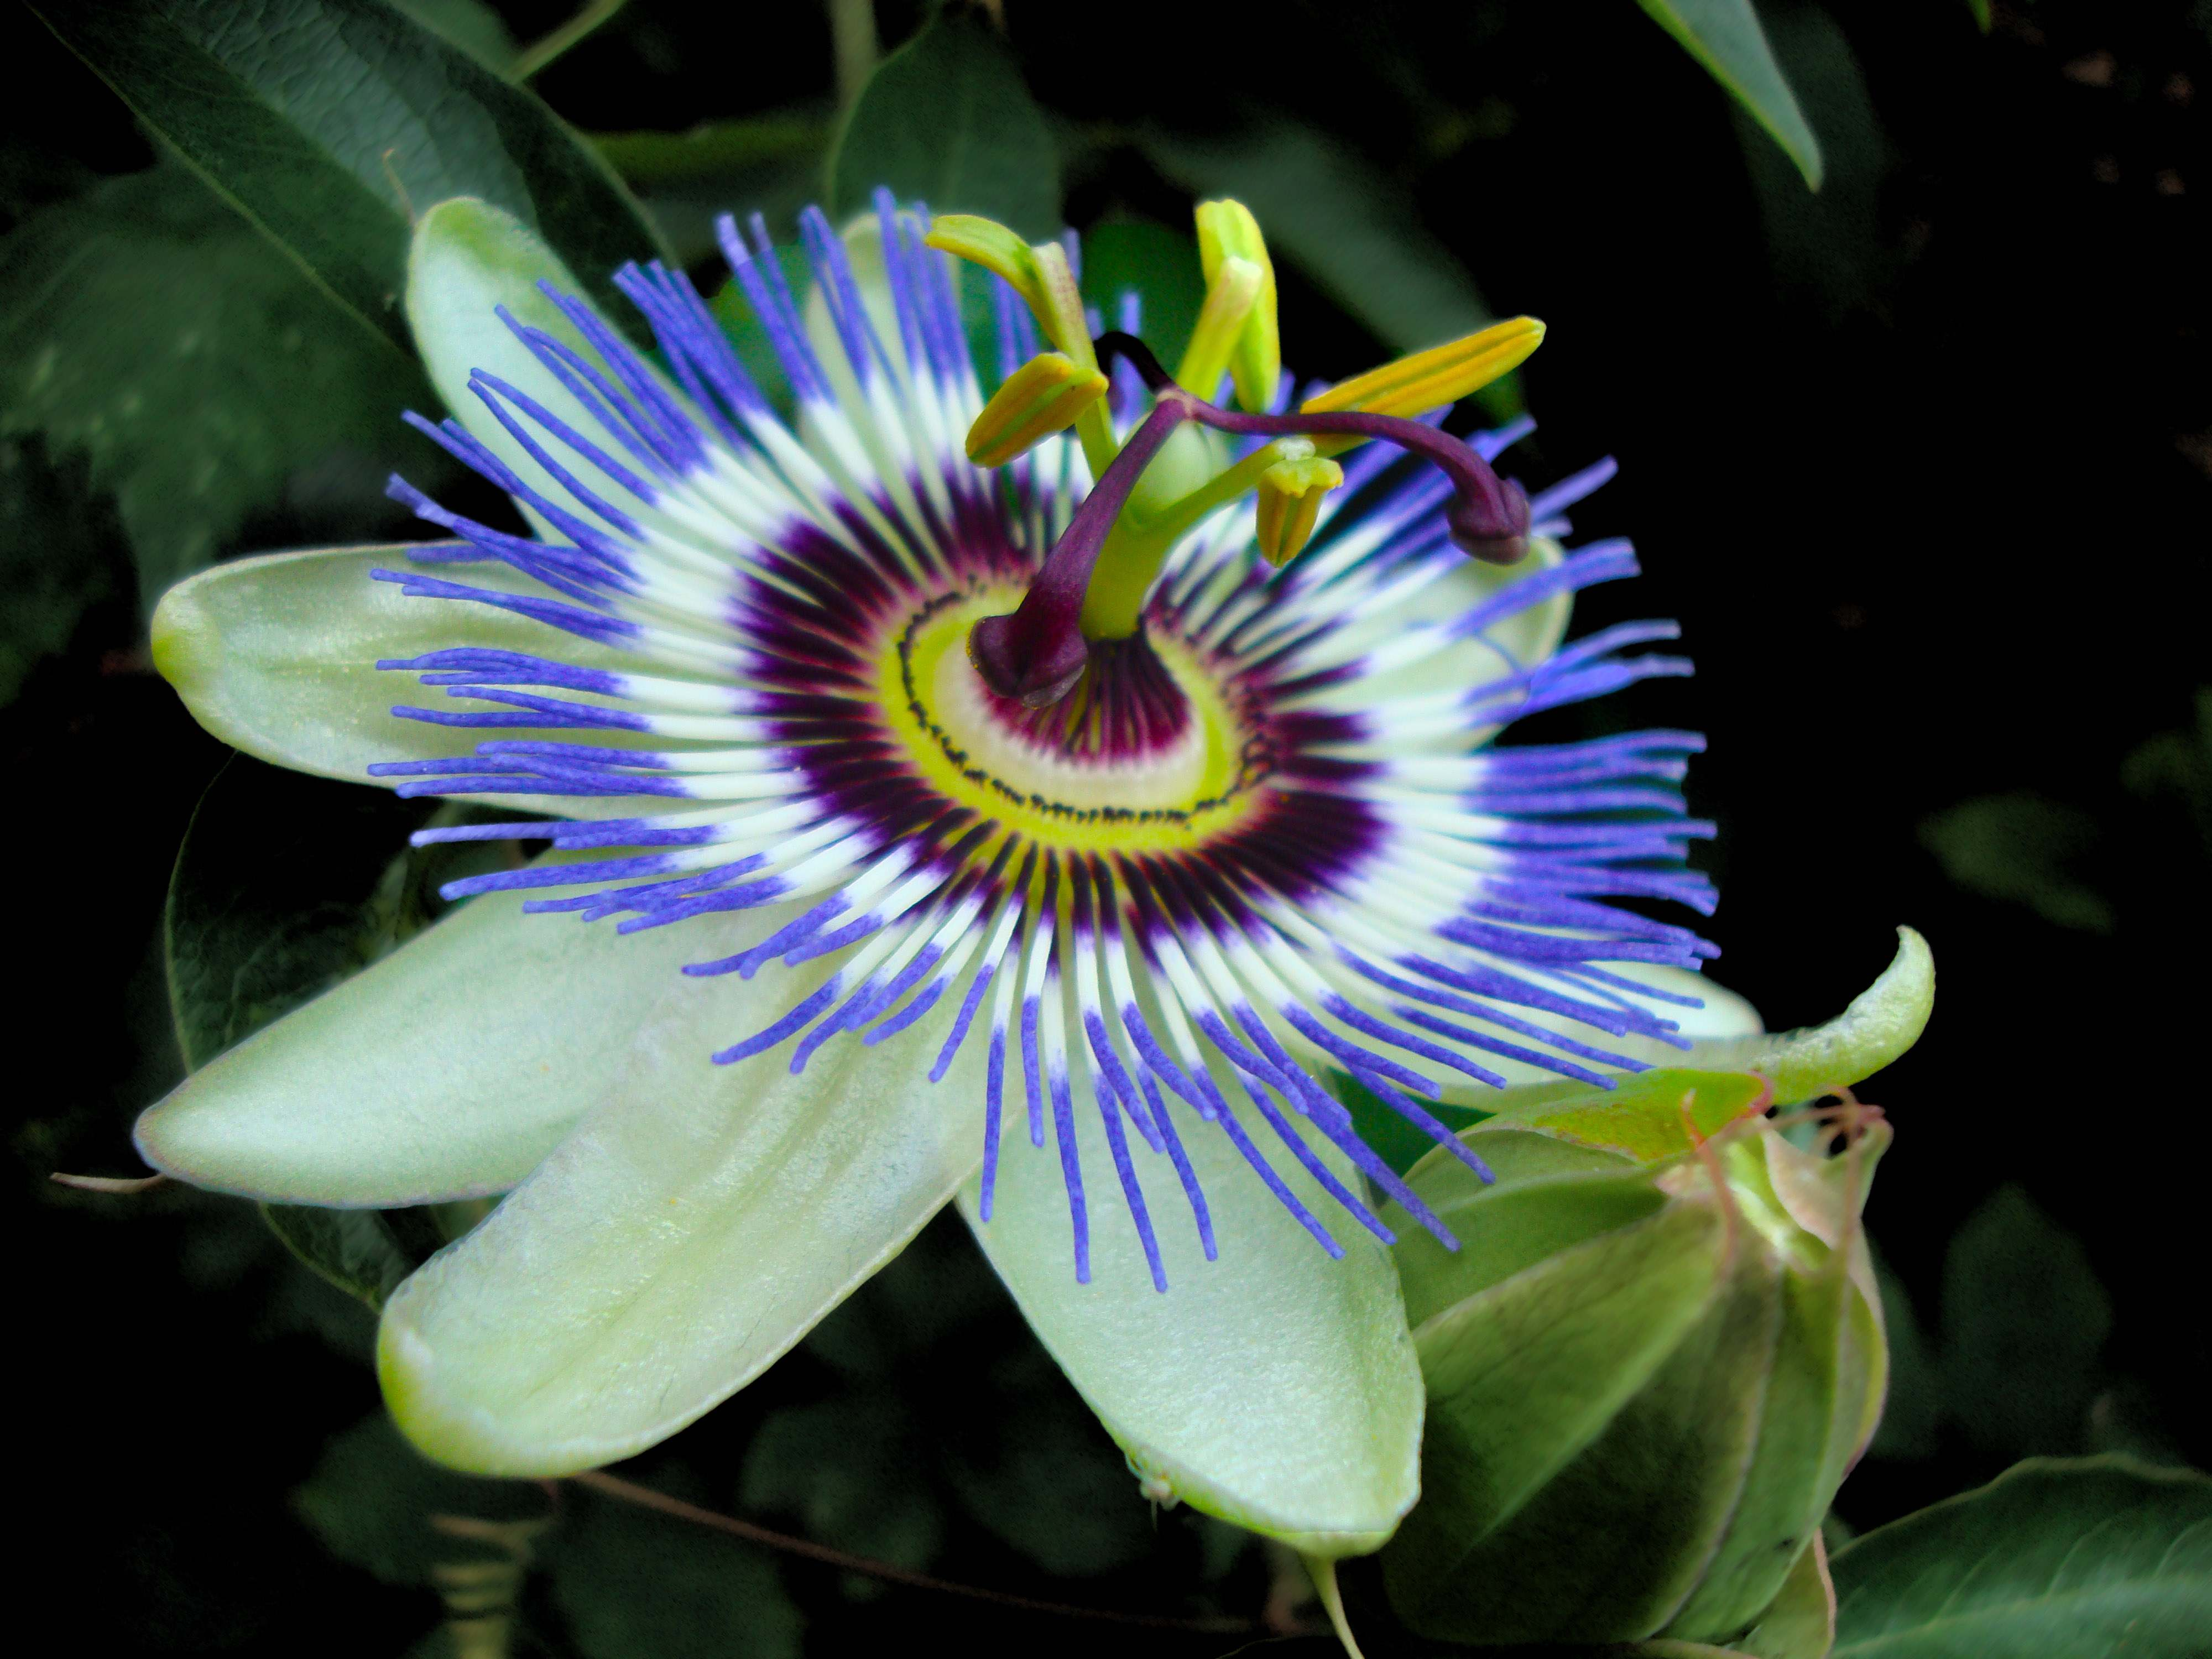 4000x3000 - Passion Flower Wallpapers 28